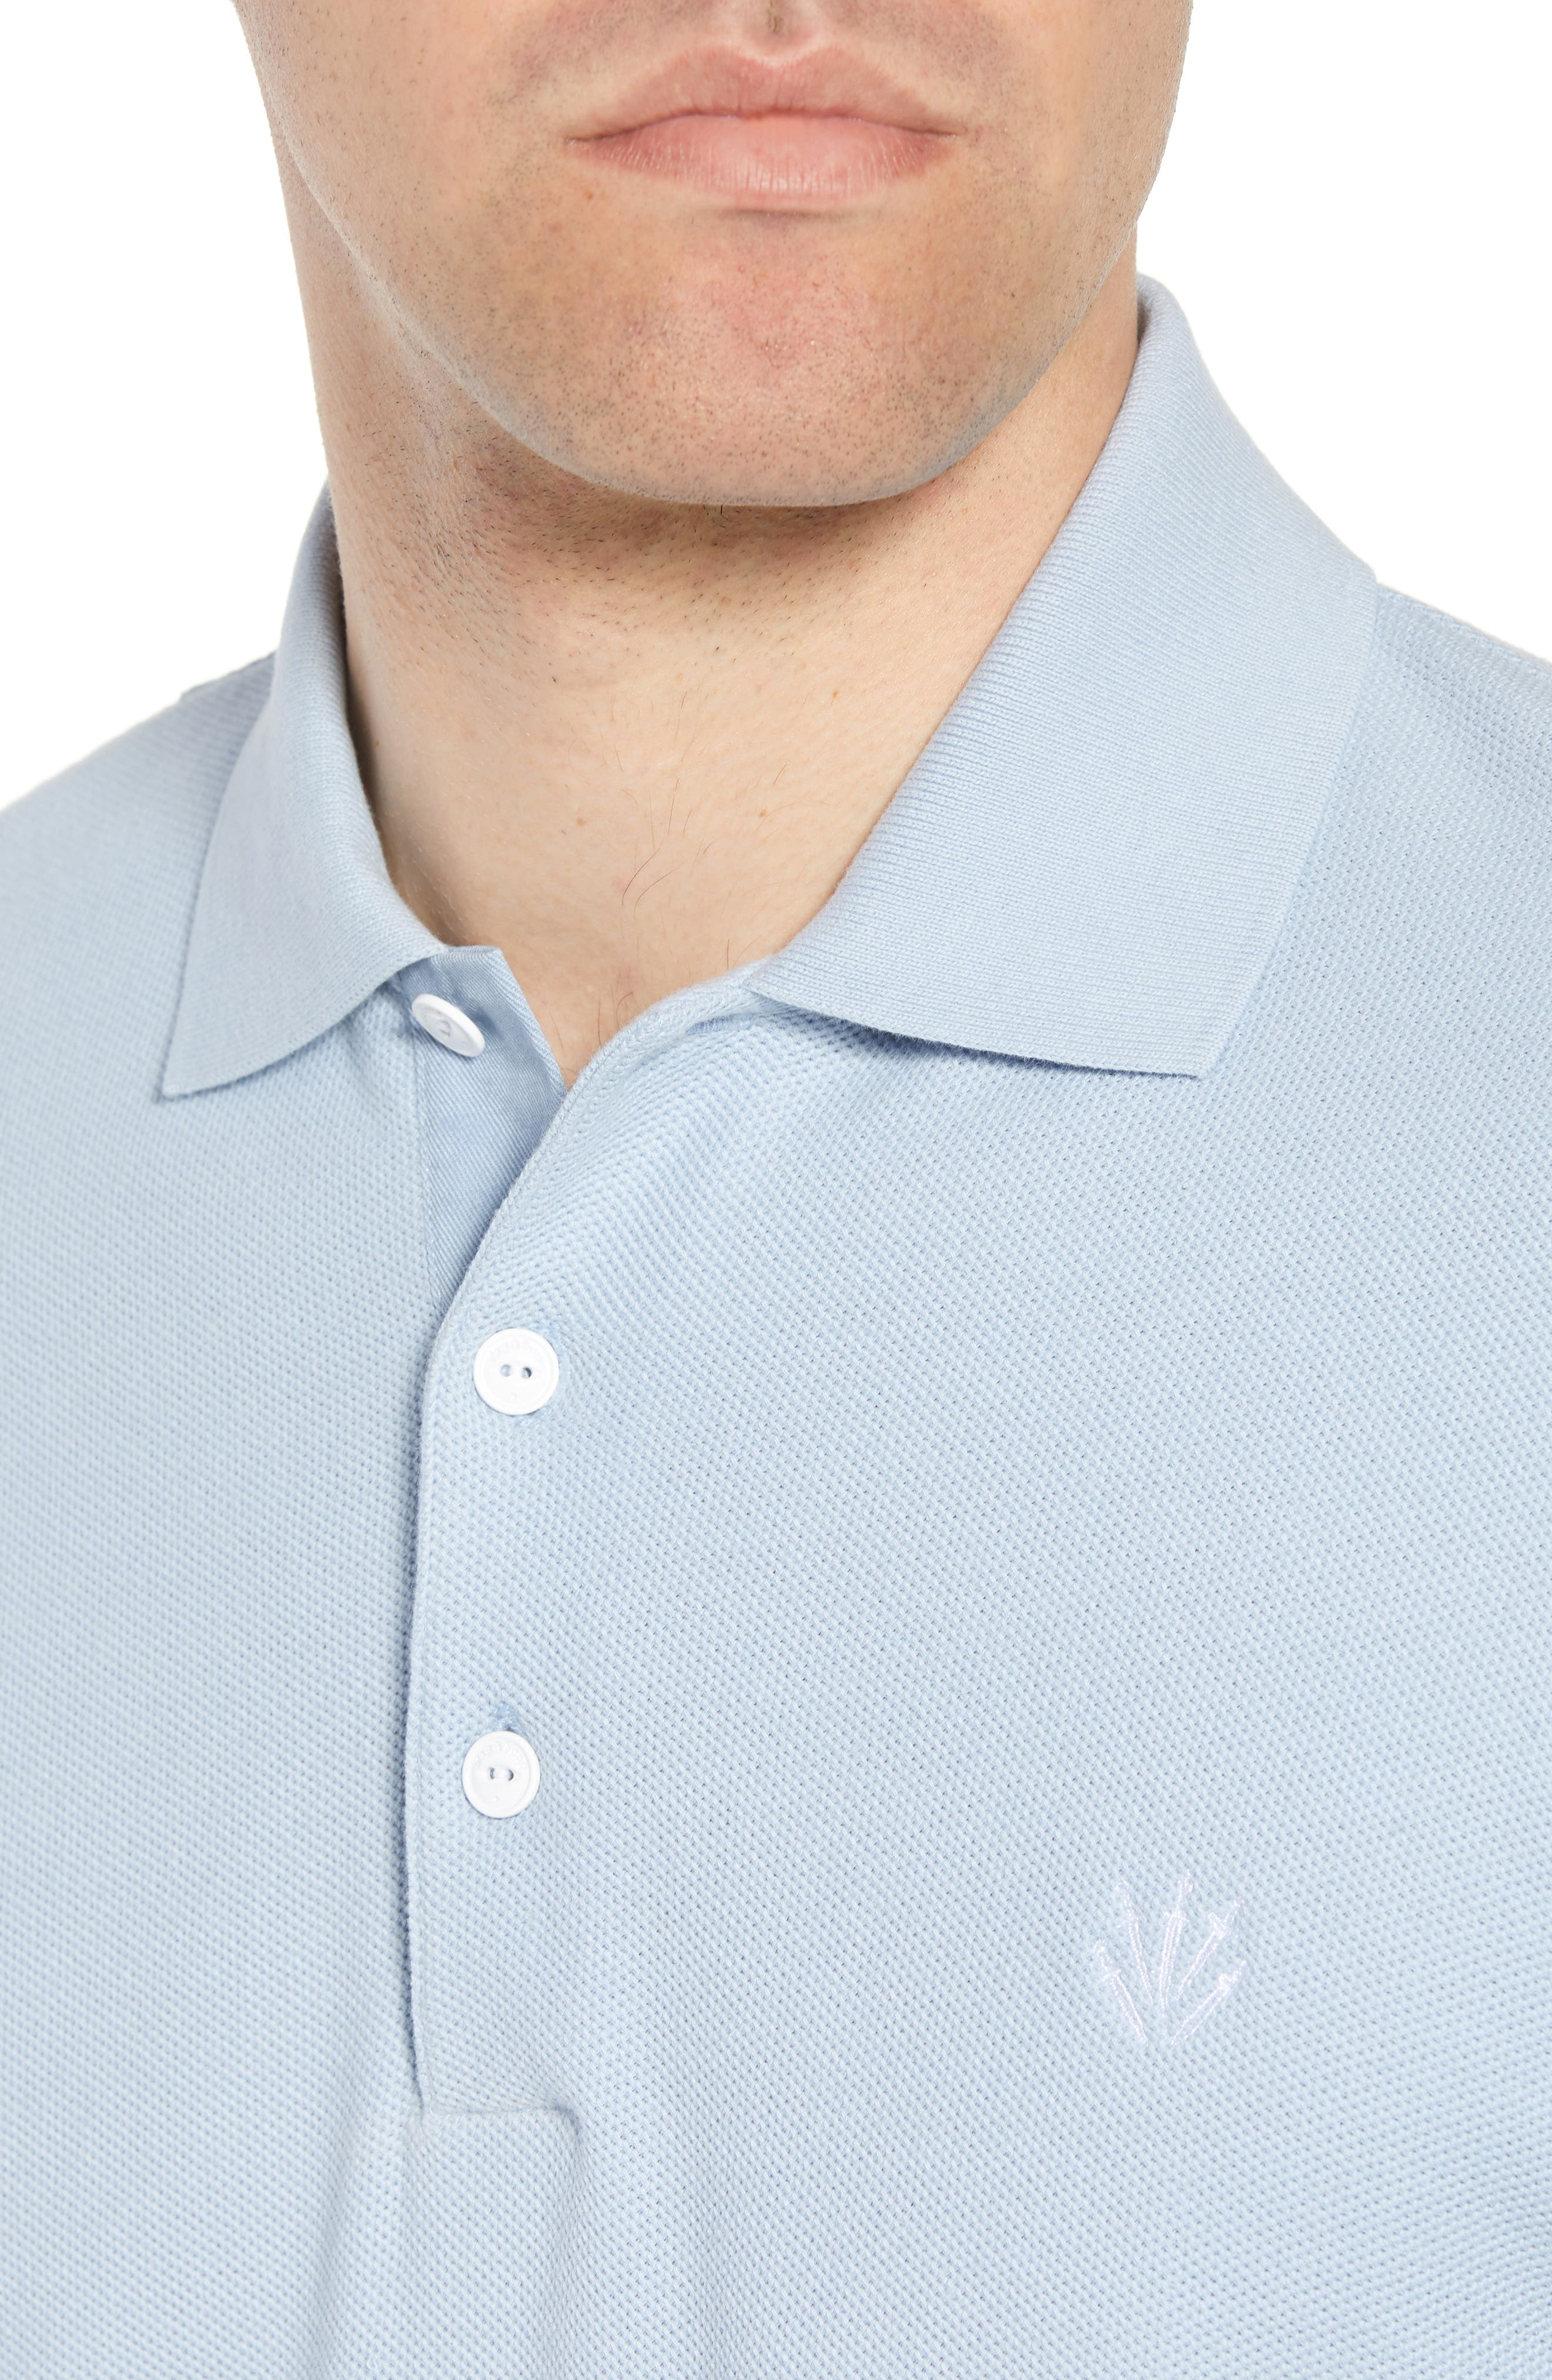 Regular Fit Polo,                             Alternate thumbnail 4, color,                             Pale Perwnkl